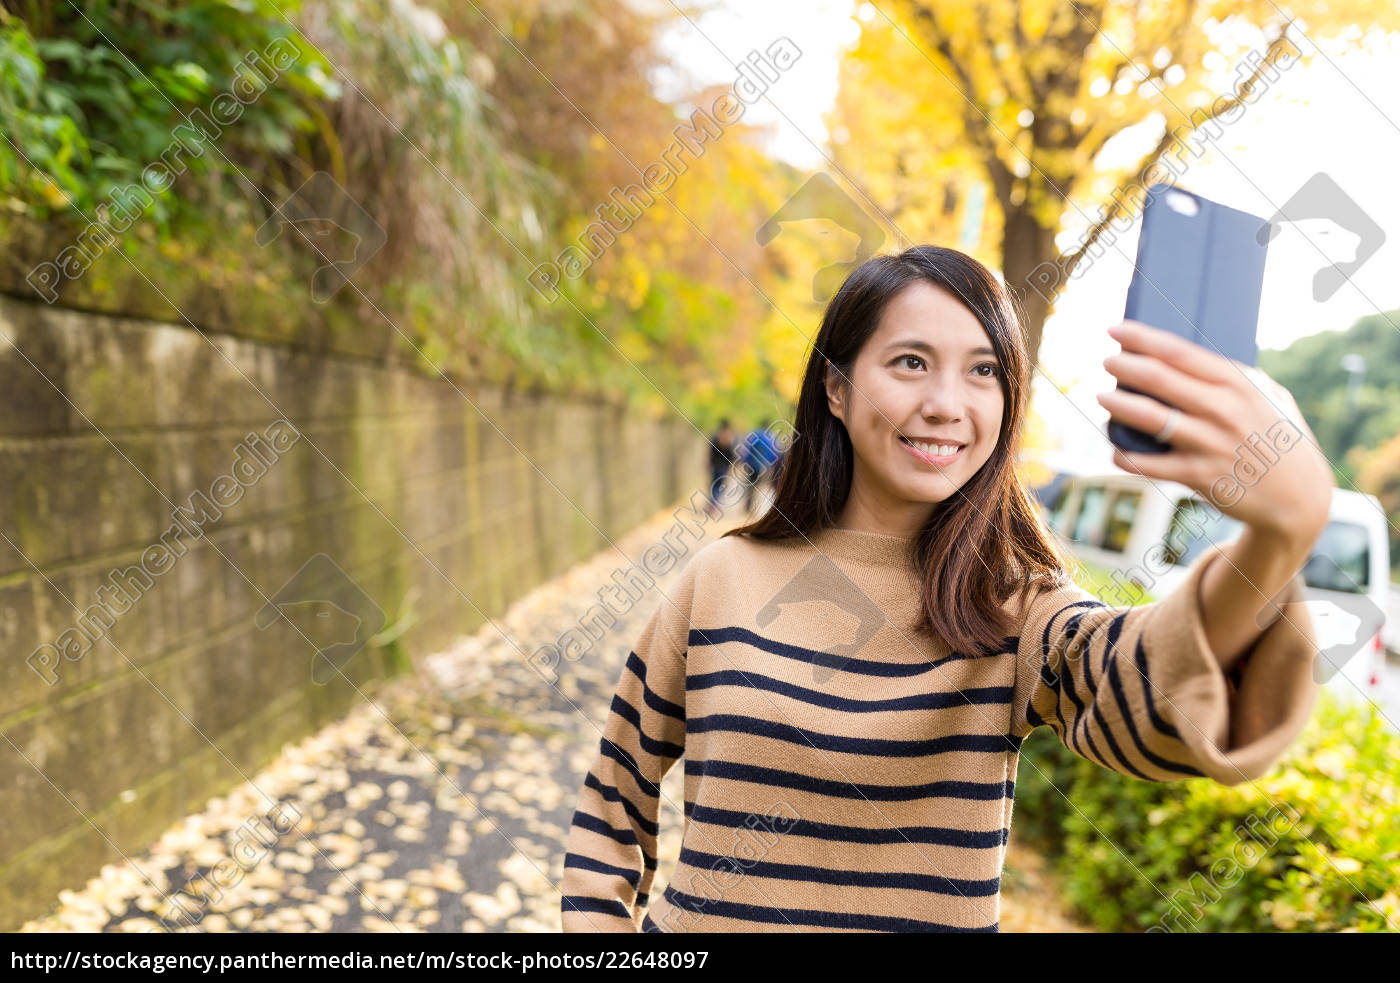 woman, taking, selfie, with, cellphone, in - 22648097